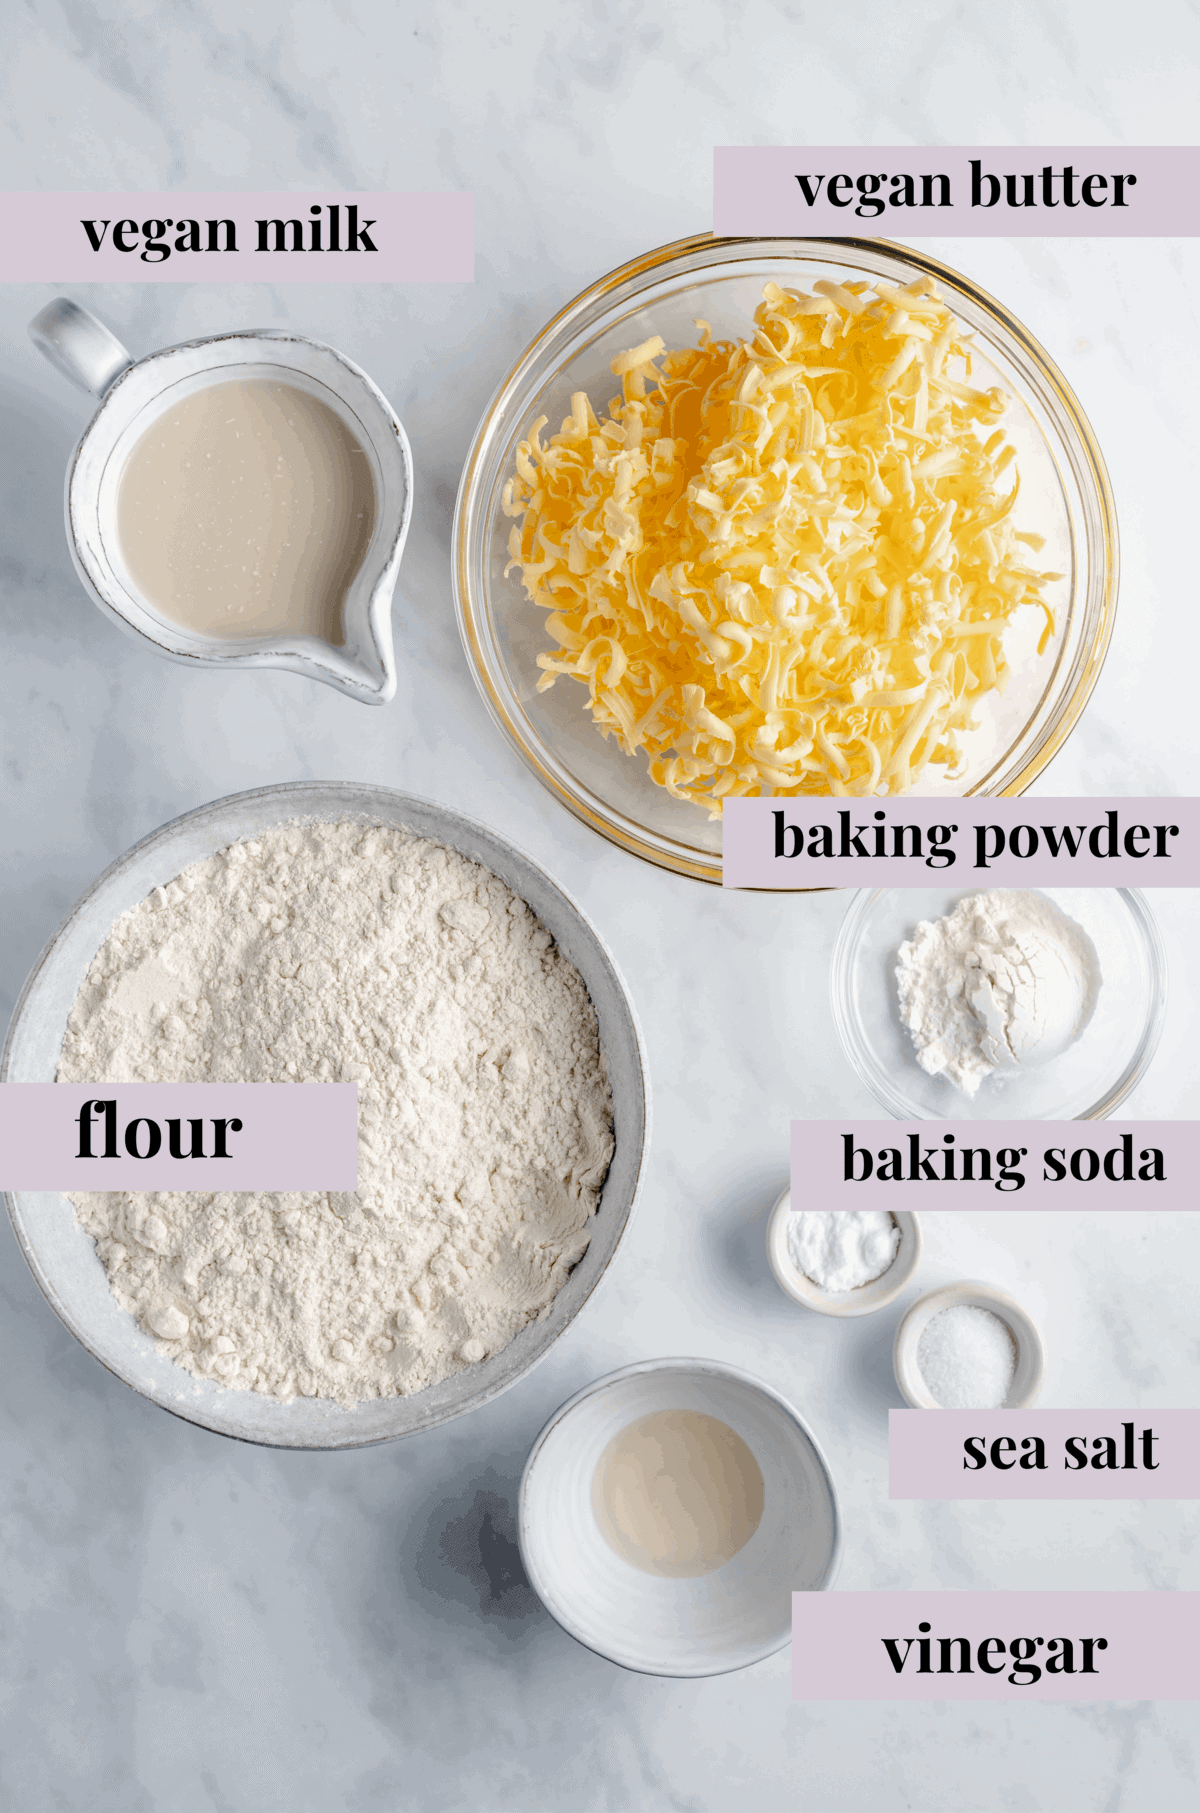 A Lineup of the Ingredients Needed to Make Vegan Biscuits